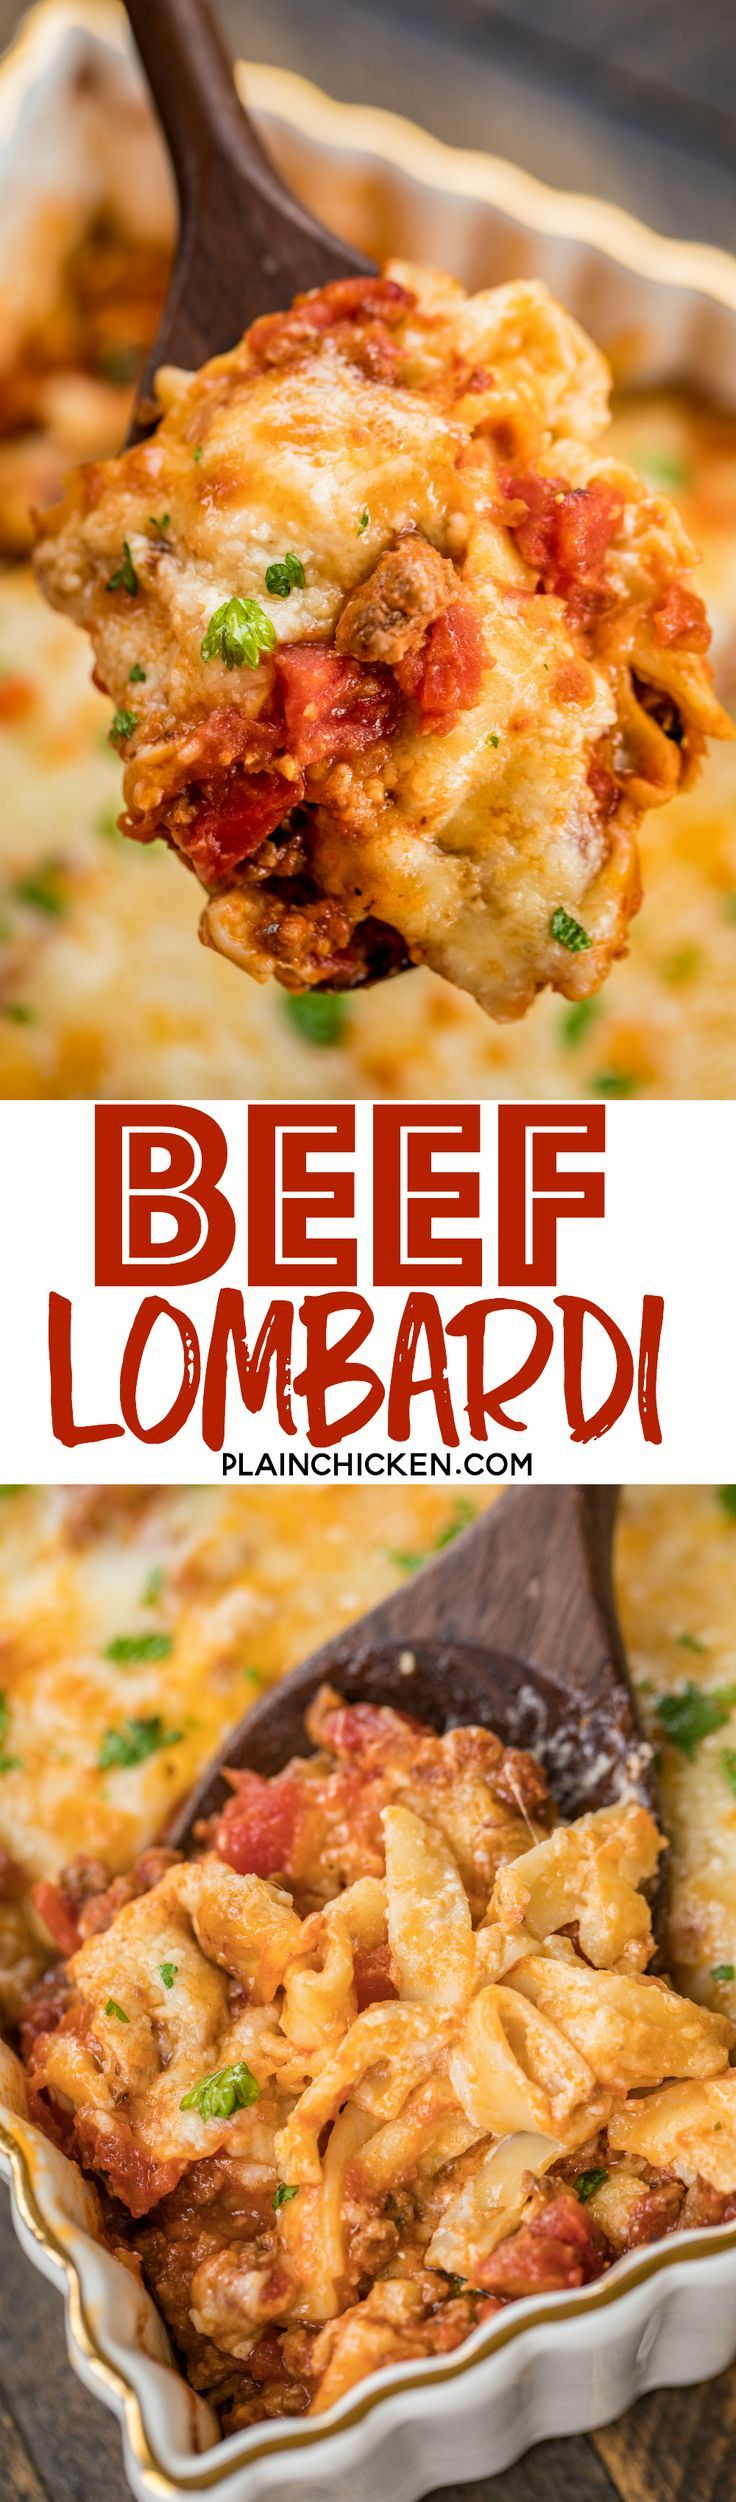 Beef Lombardi Casserole - comfort food at its best! SO easy! Can be made ahead and frozen for up to a month. Ground beef, tomatoes, diced tomatoes and green chiles, tomato paste, egg noodles, sour cream cheddar, parmesan and mozzarella. Everyone cleaned t